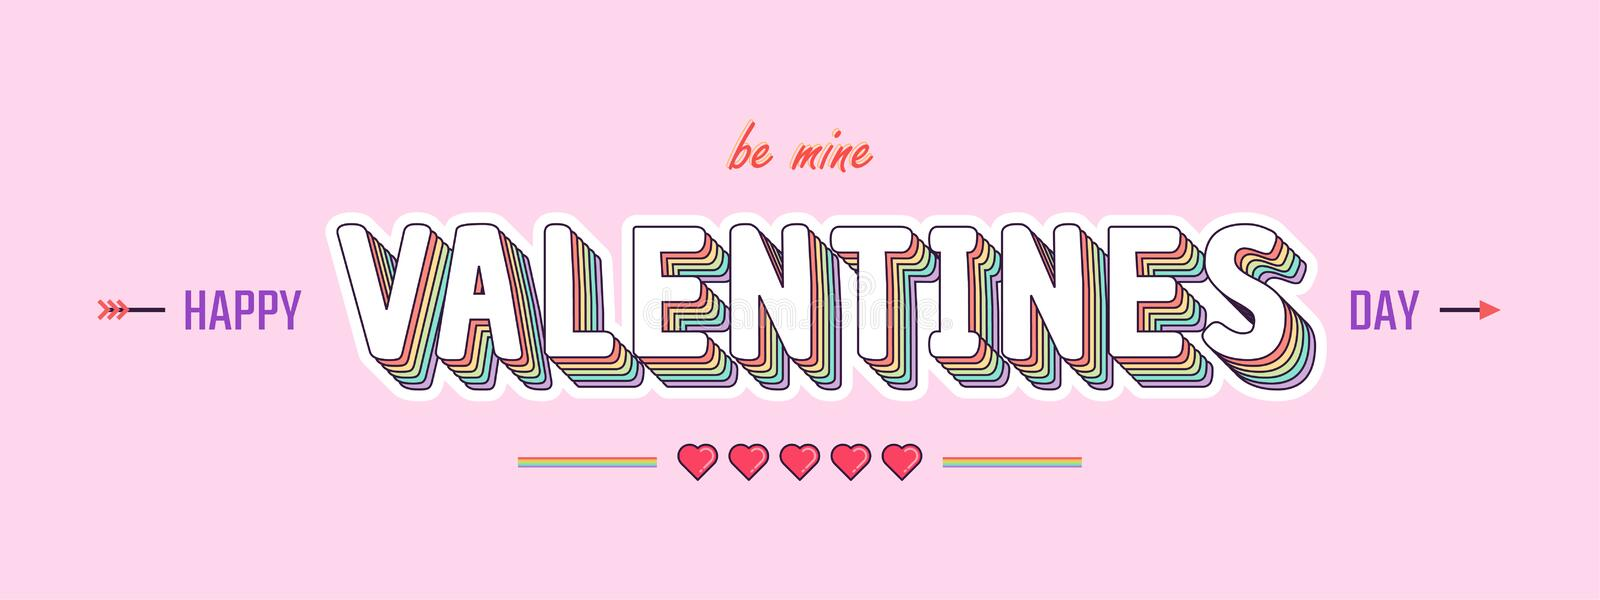 Valentines Day typography pastel color style - Vector Illustration royalty free stock images